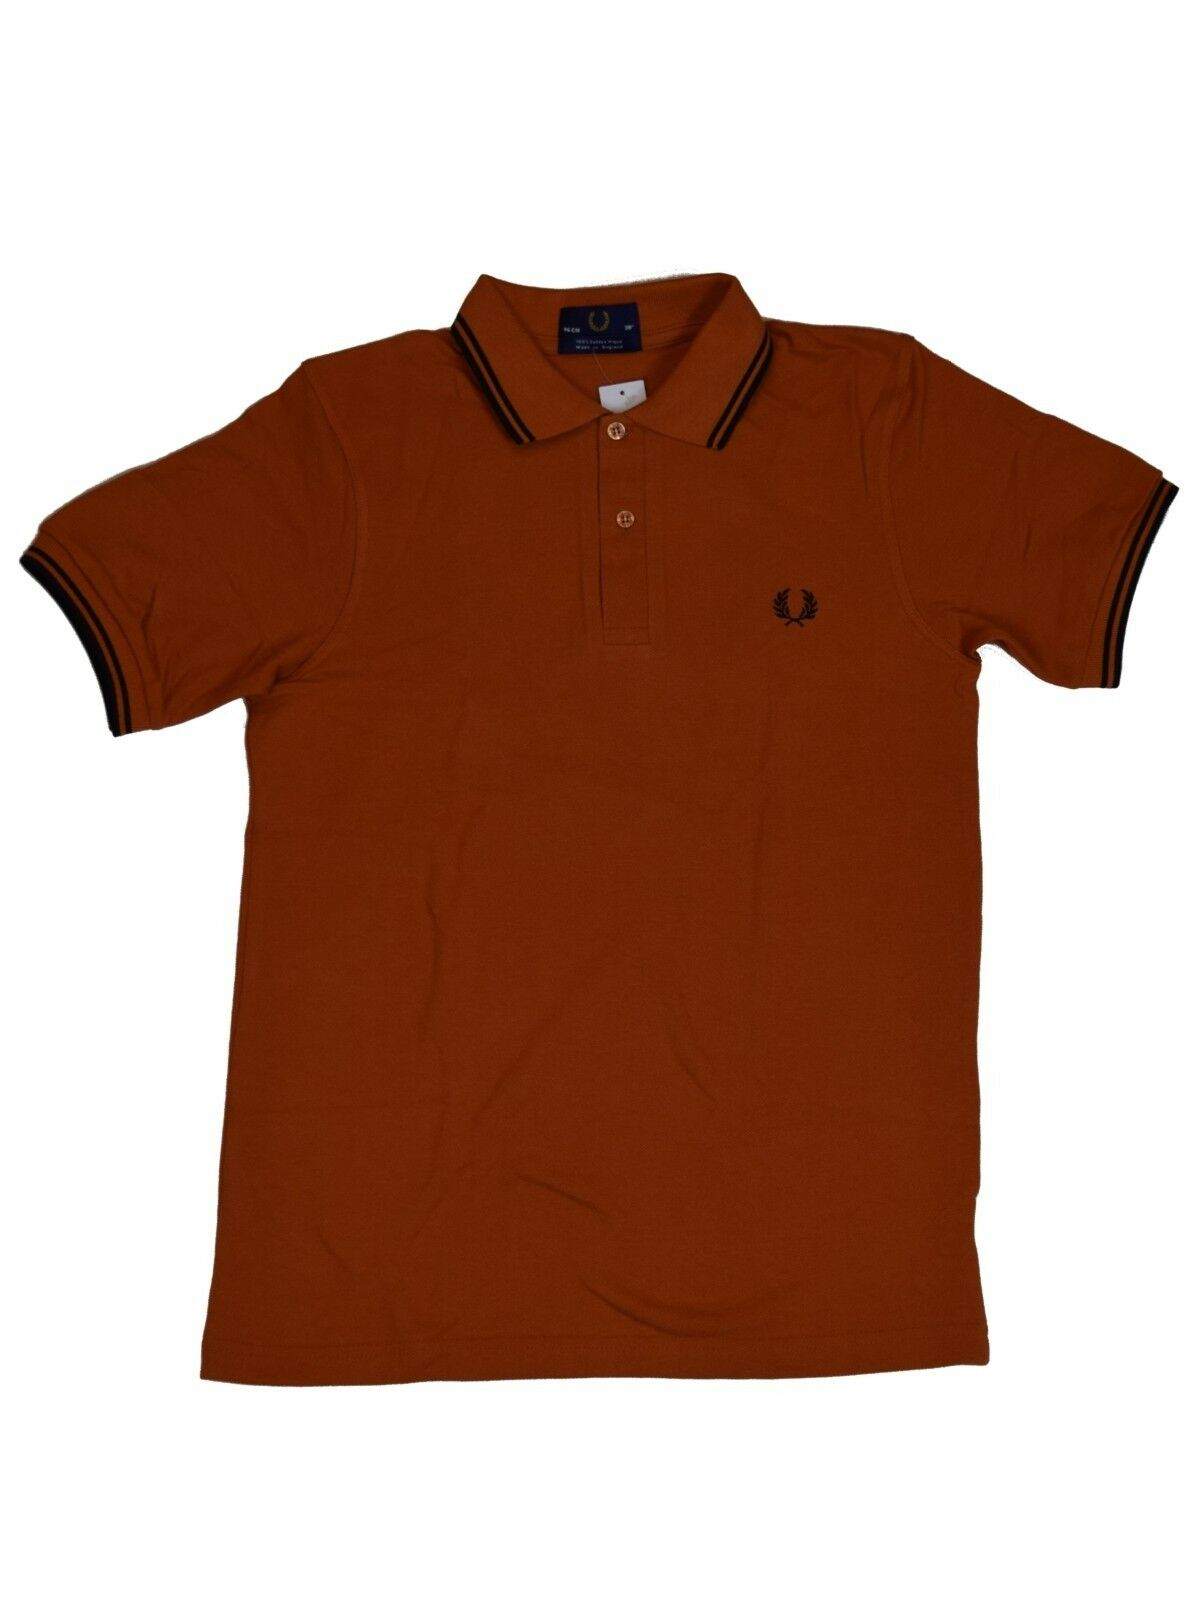 Fred Perry Polo - Shirt M12 448 orange   black Made in England  5376